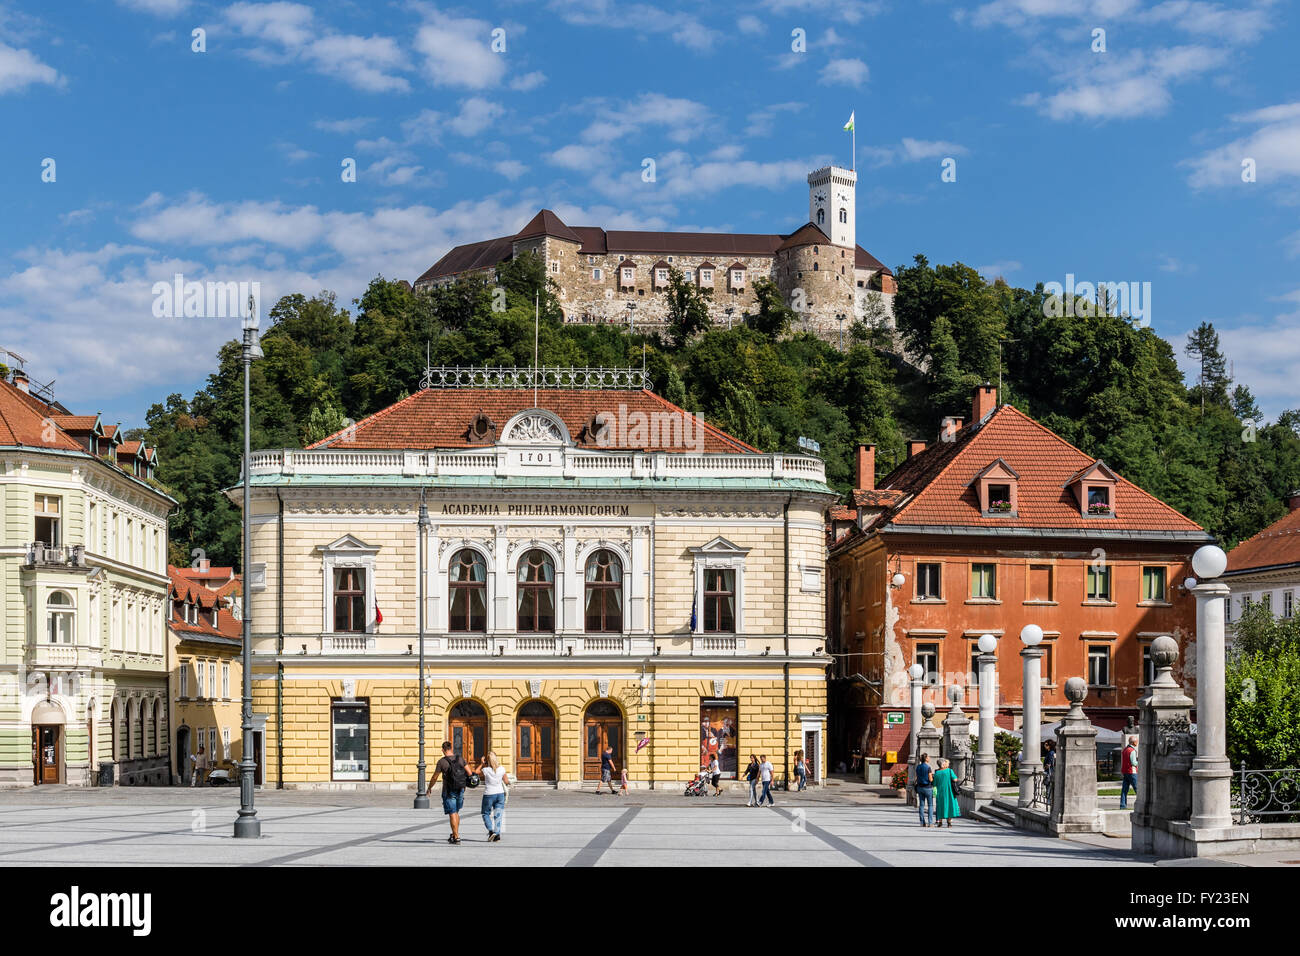 The Slovenian Philharmonic Hall and Ljubljana Castle - Ljubljana, Slovenia - Stock Image